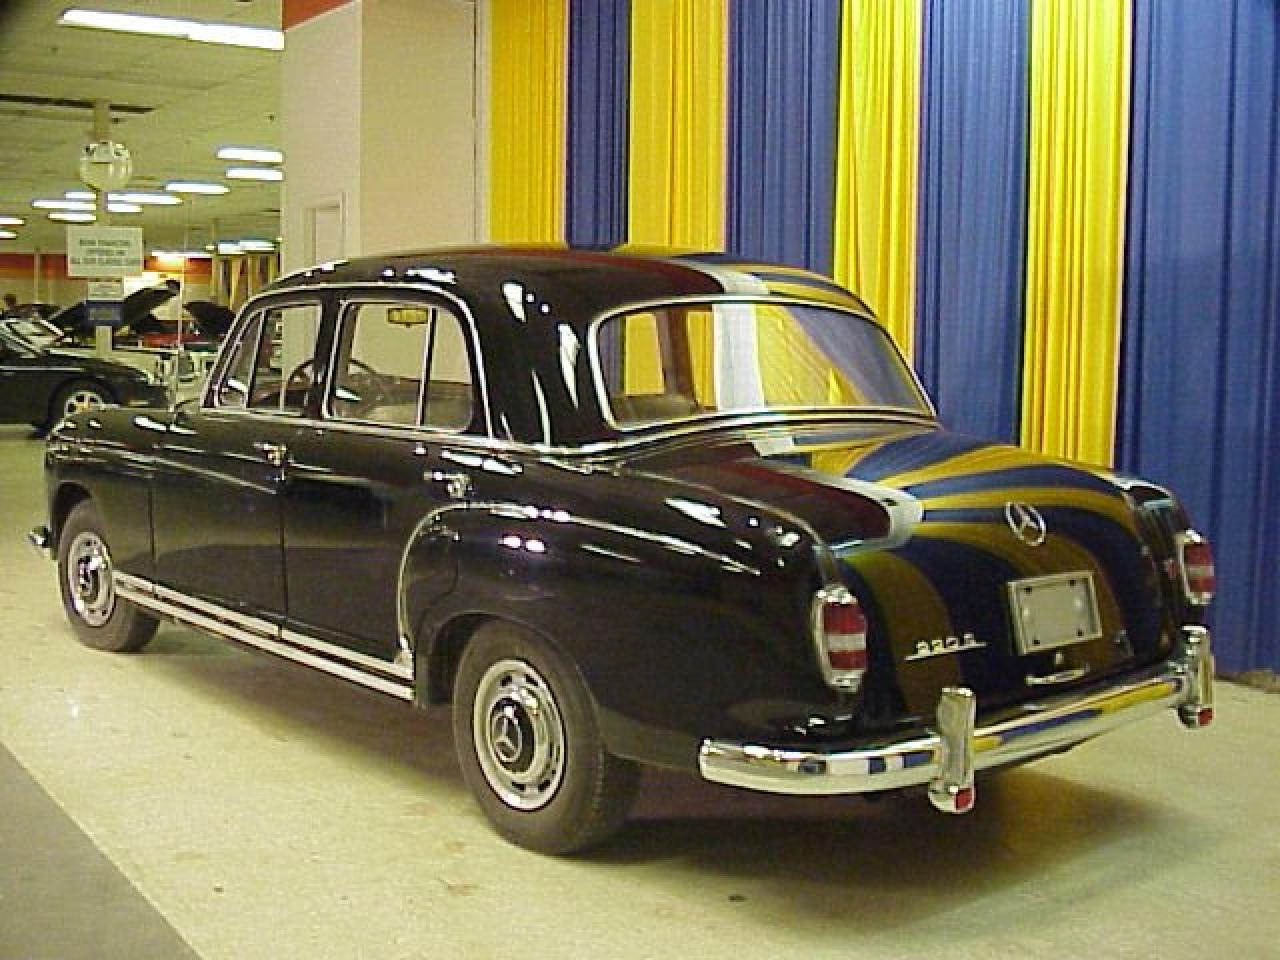 1959 mercedes benz 220 s gateway classic cars 2046 stl for 1959 mercedes benz